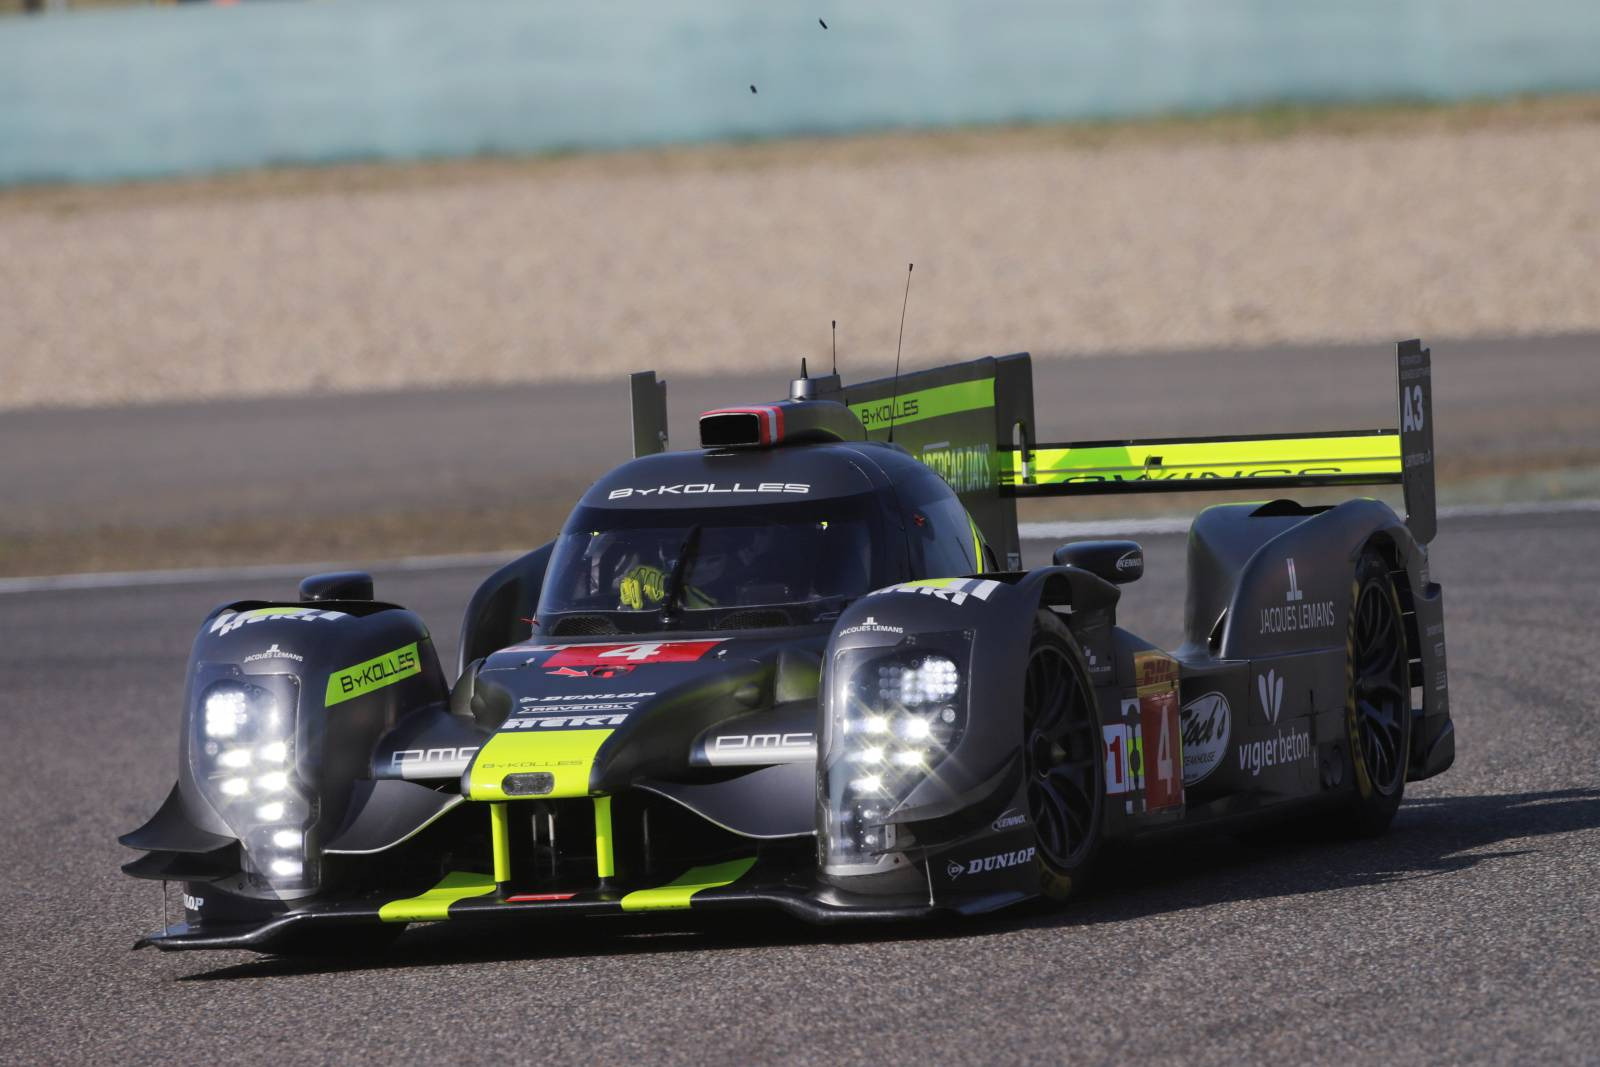 byKOLLES-racing-WEC-CHINA-2016-2016-16